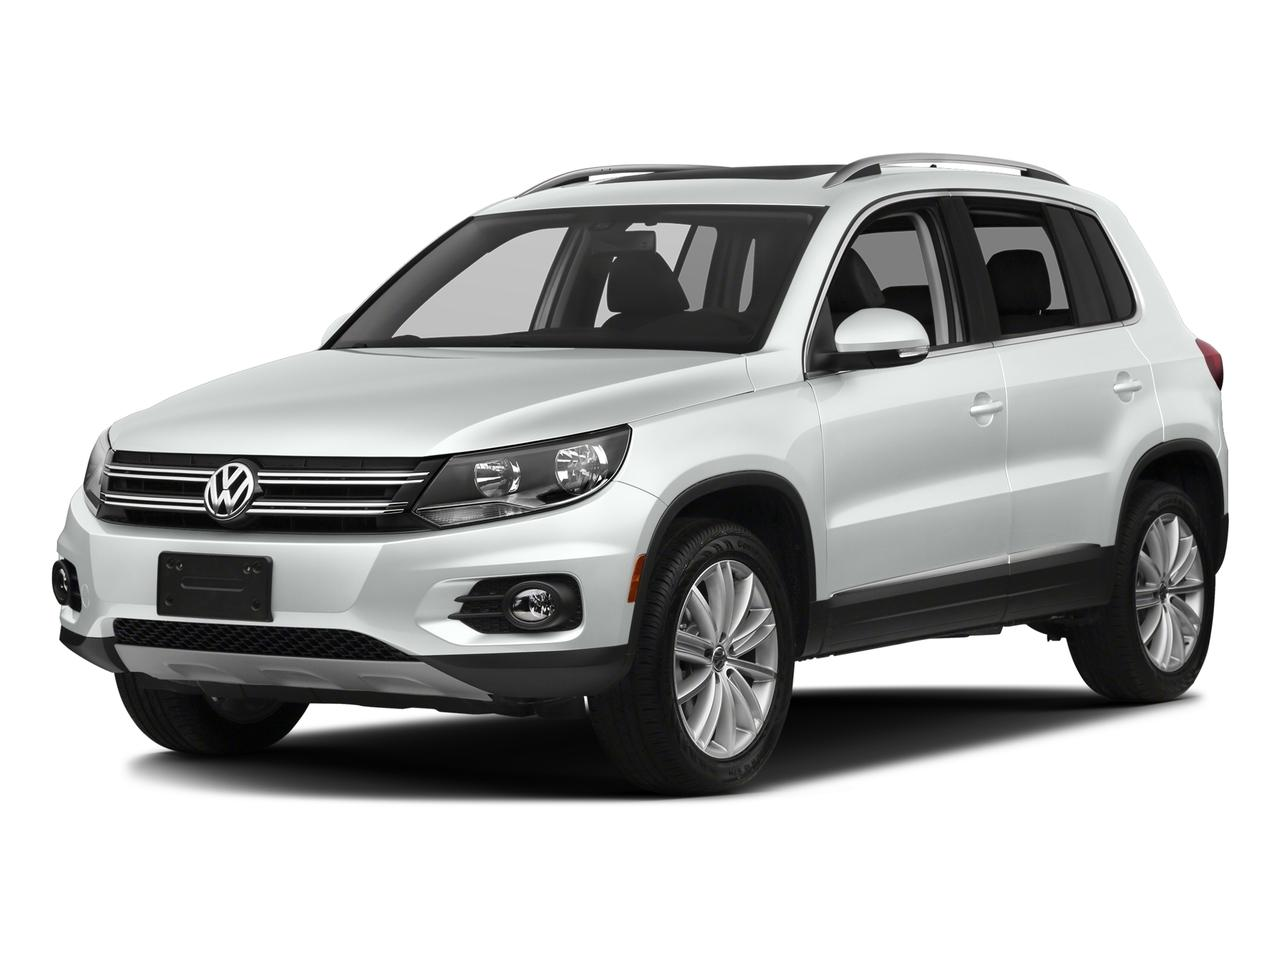 2017 Volkswagen Tiguan Limited Vehicle Photo in Bowie, MD 20716